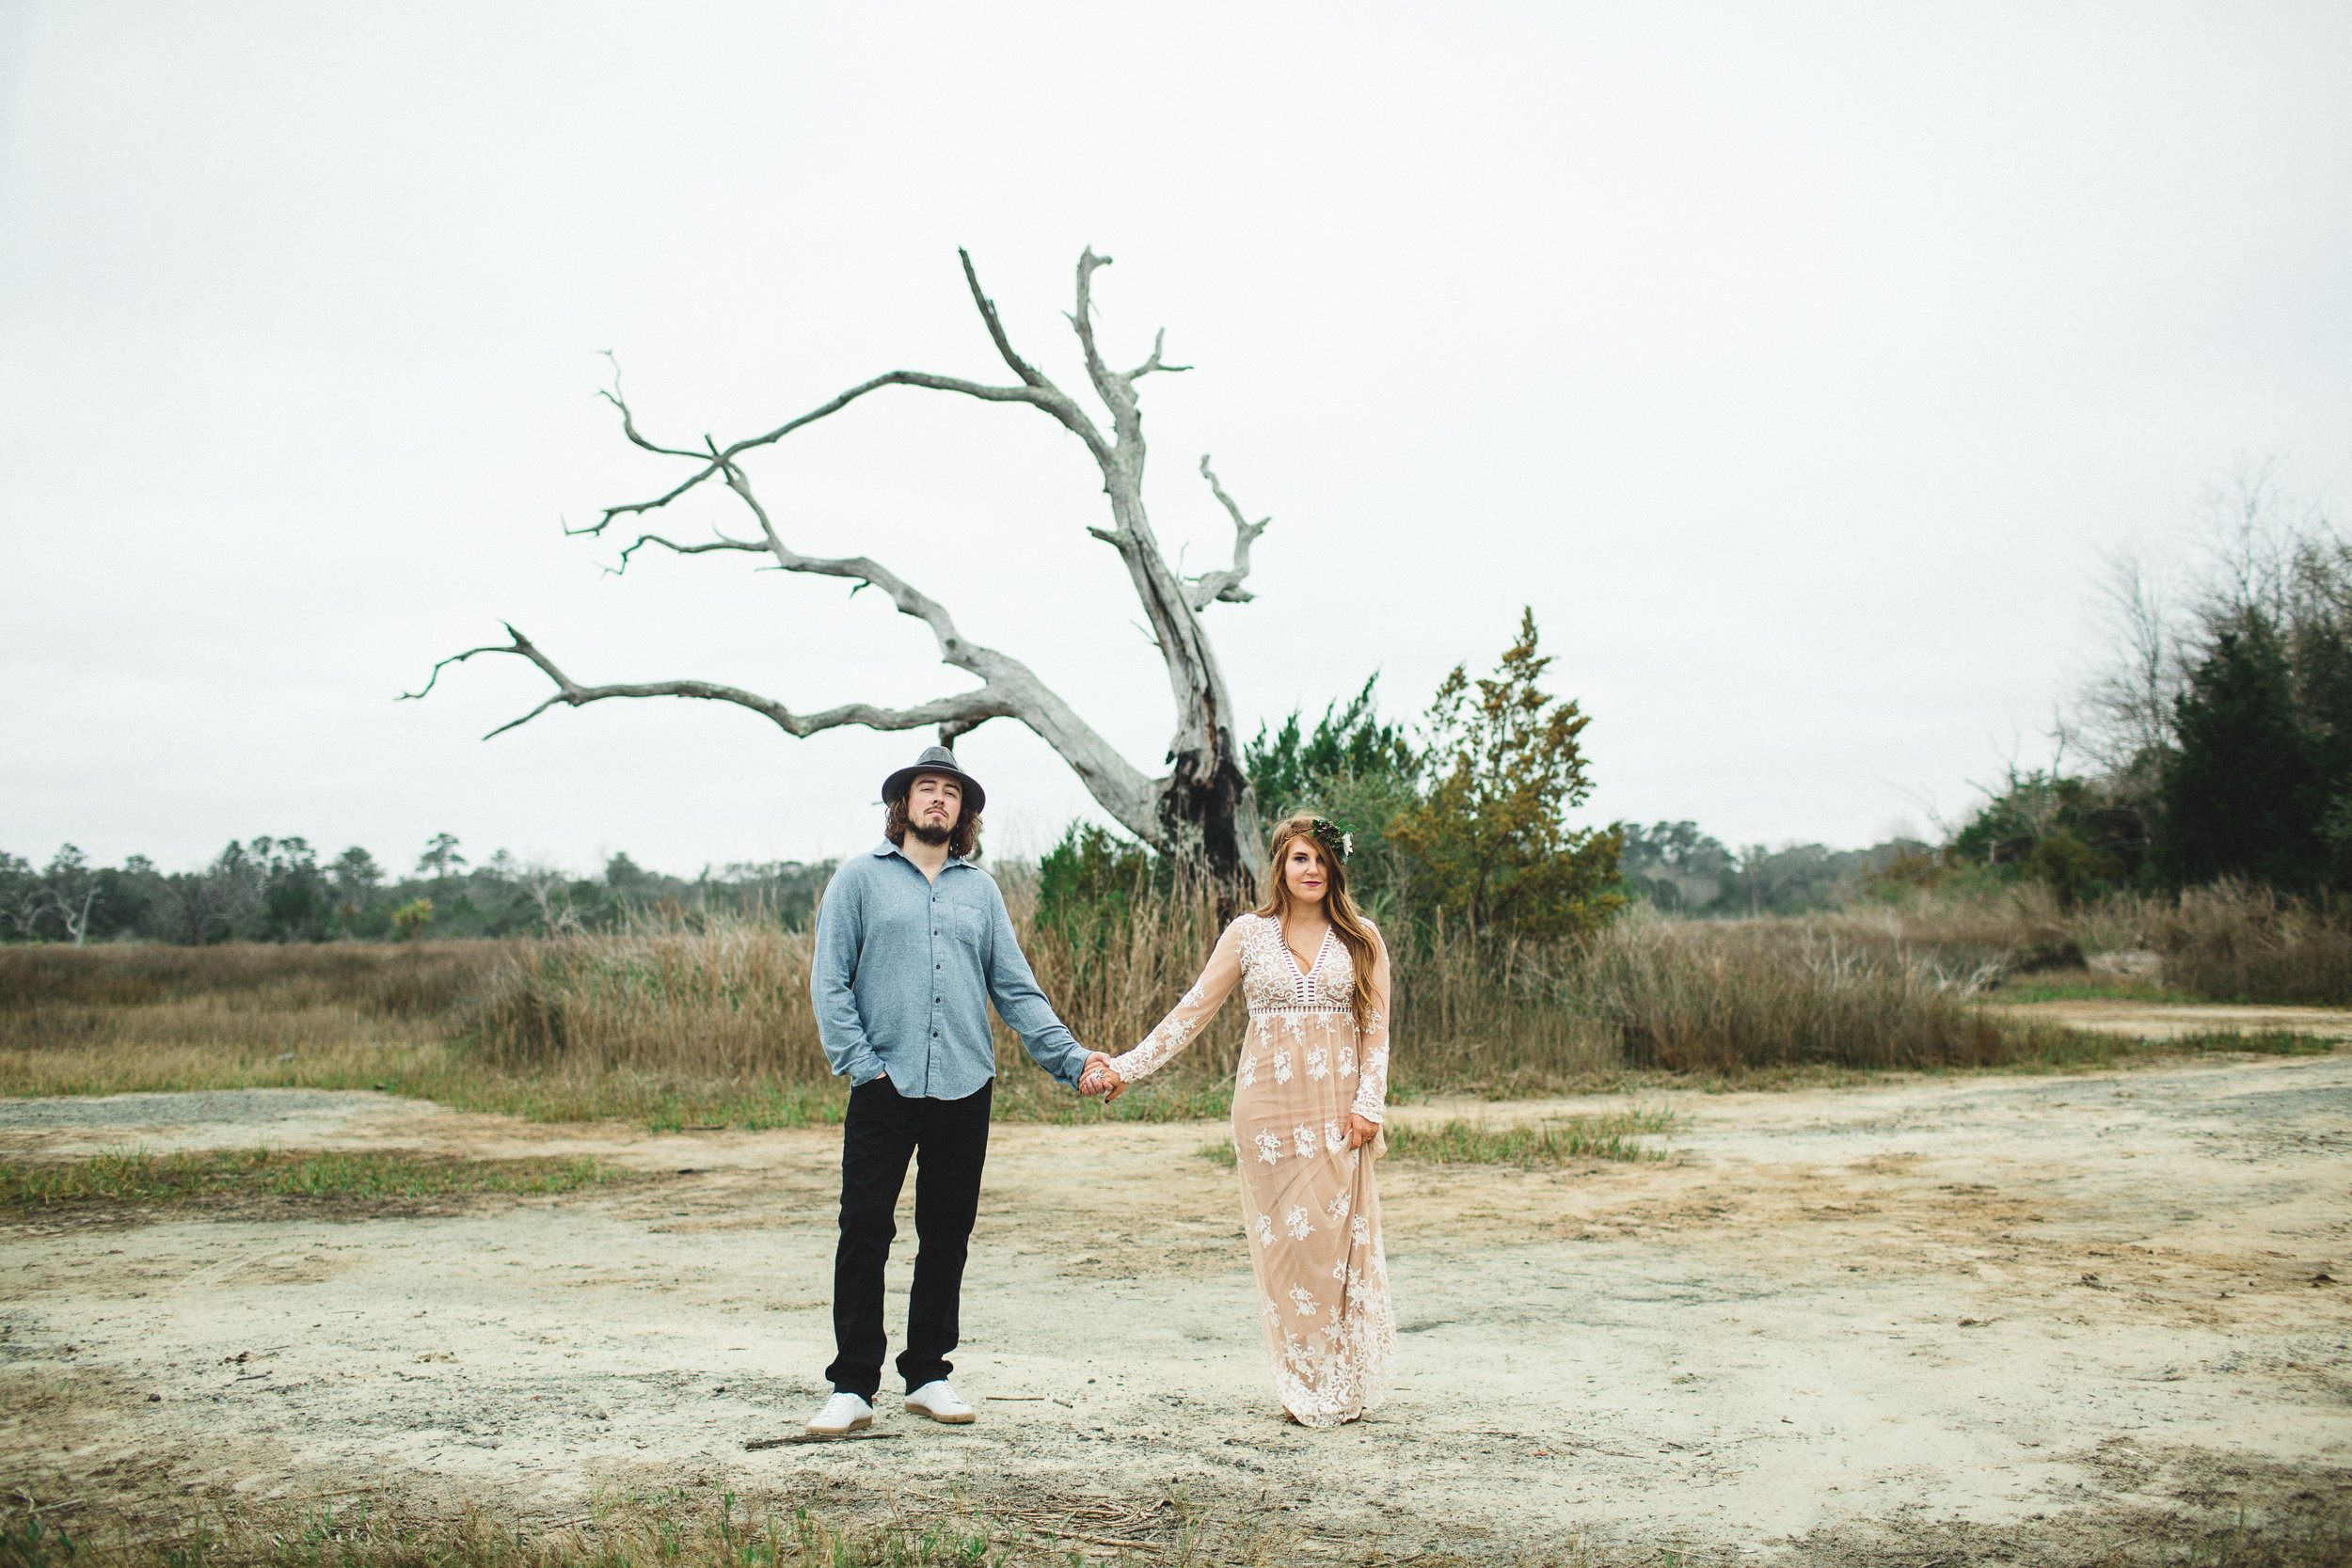 nicole-and-alex-engagement-session-ivory-and-beau-savannah-wedding-planner-savannah-event-designer-savannah-weddings-savnanah-florist-engagement-session-old-dairy-farm.jpg